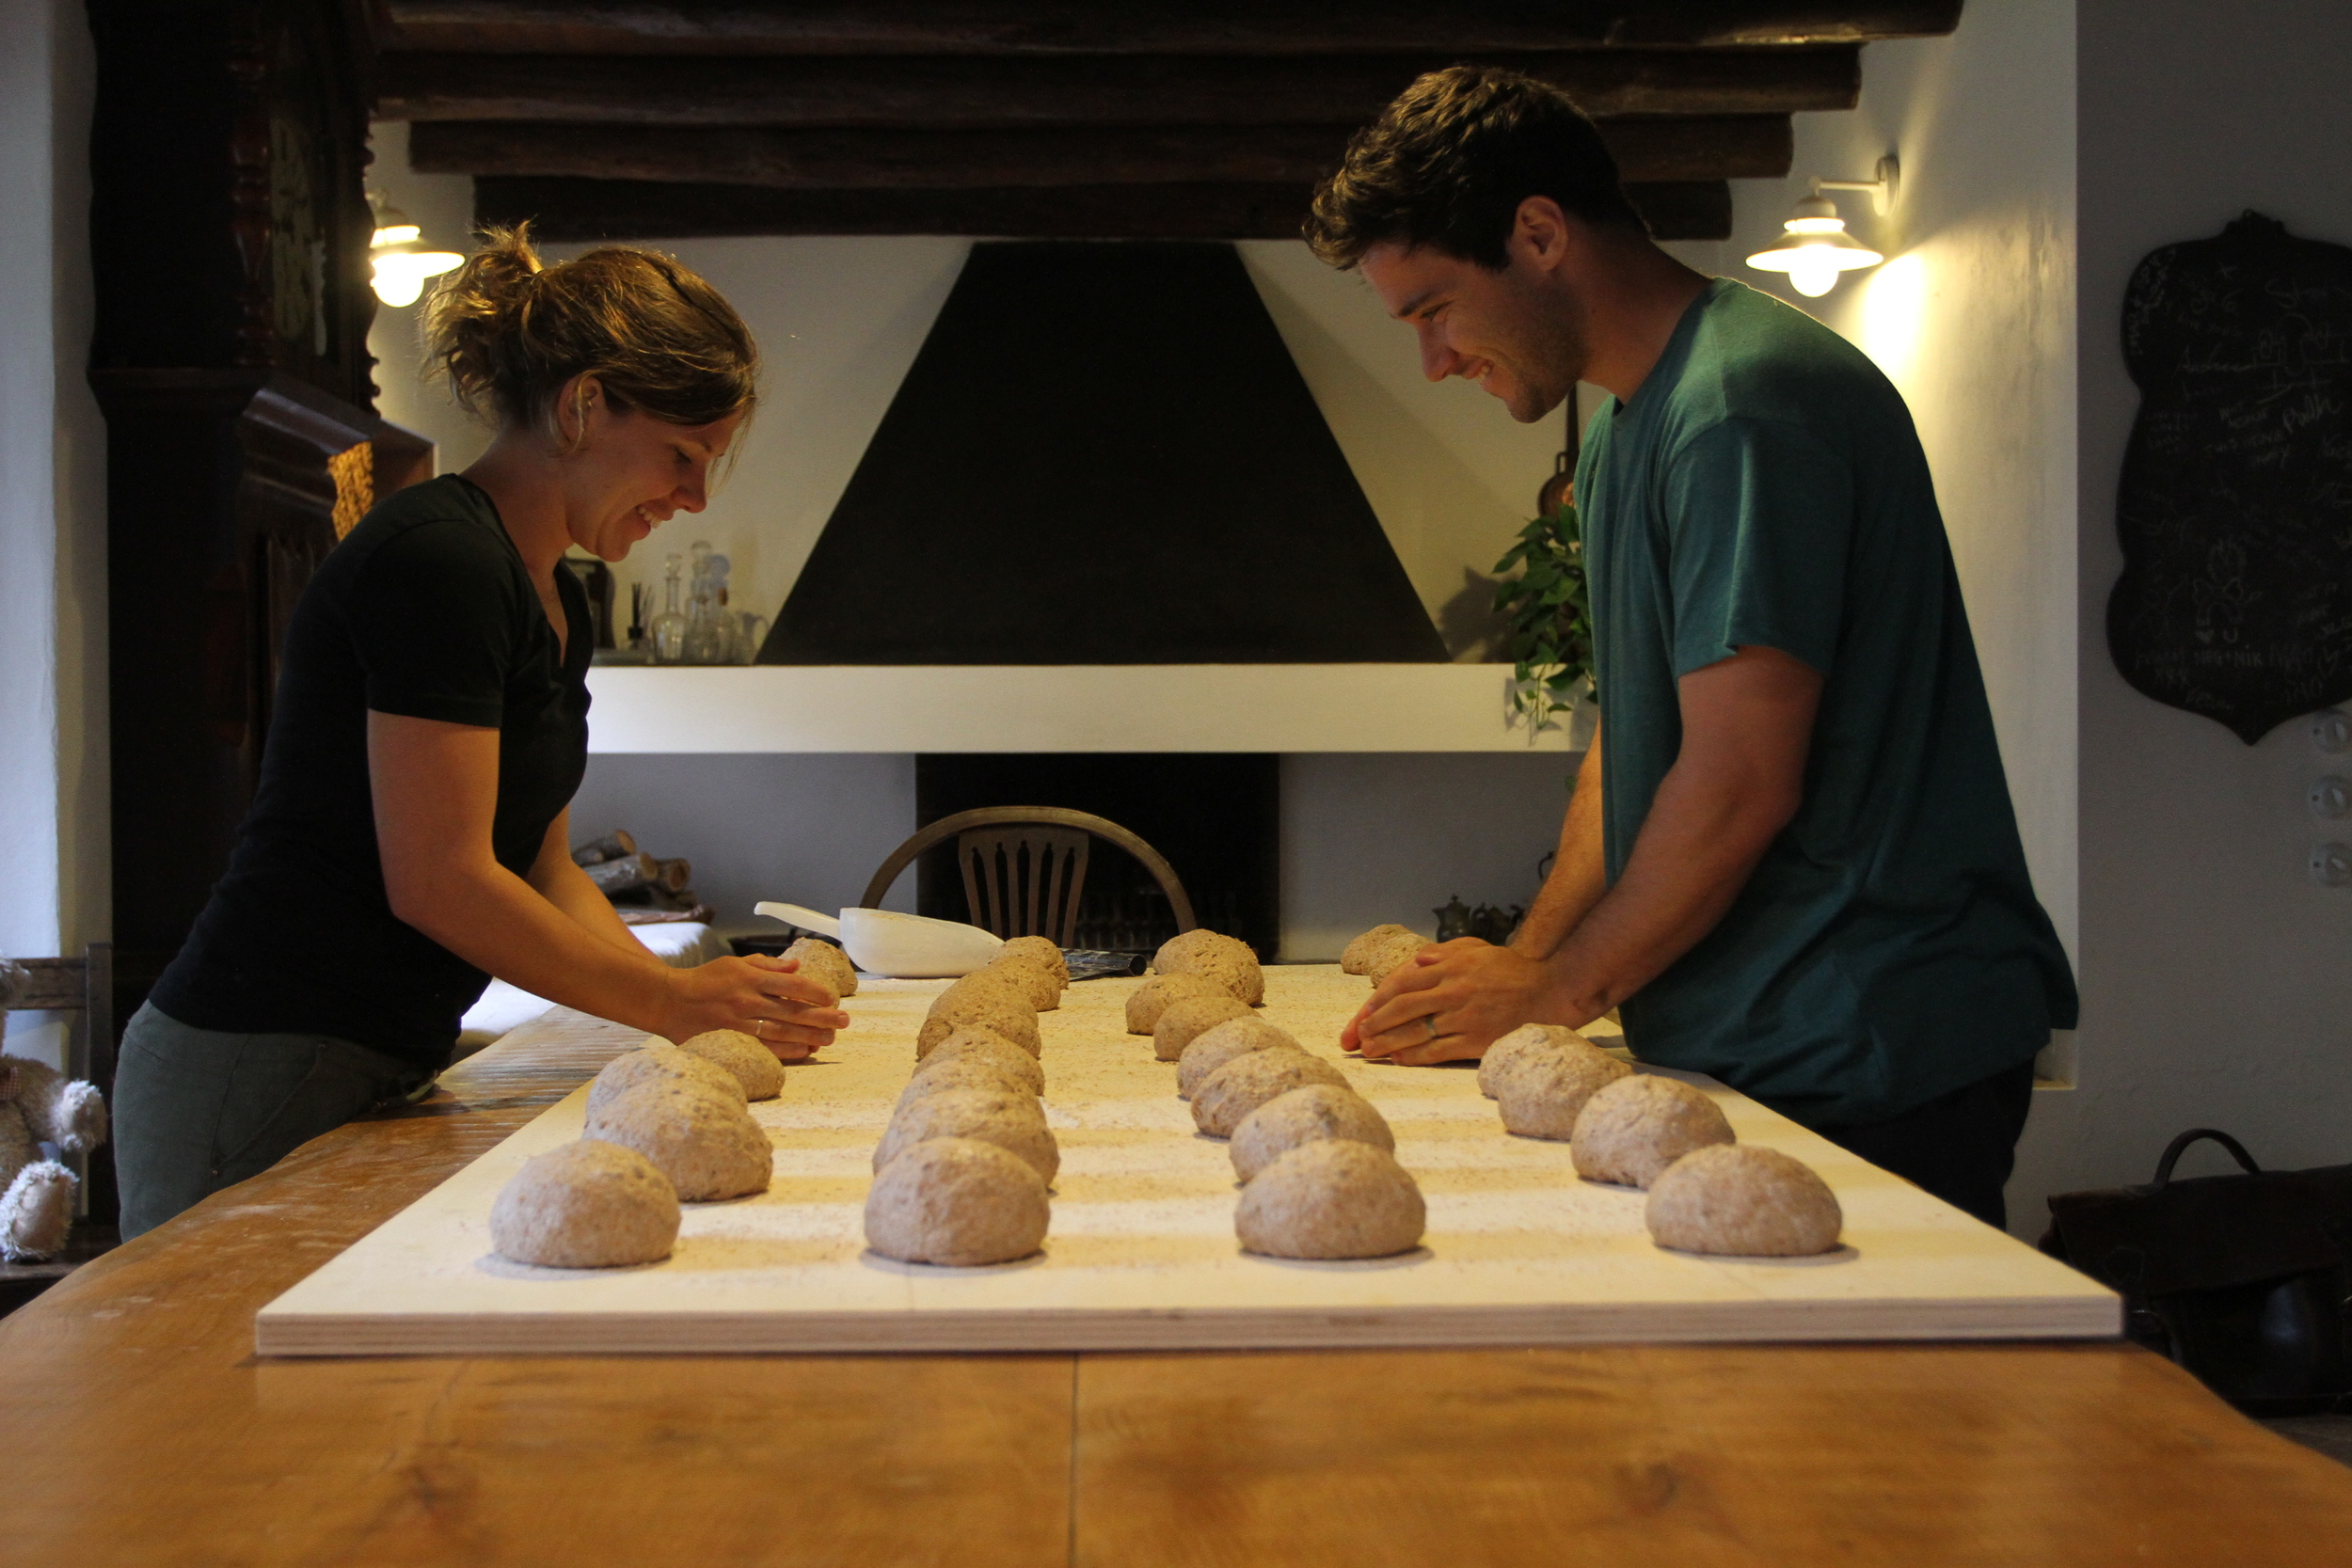 Shaping the dough before proofing